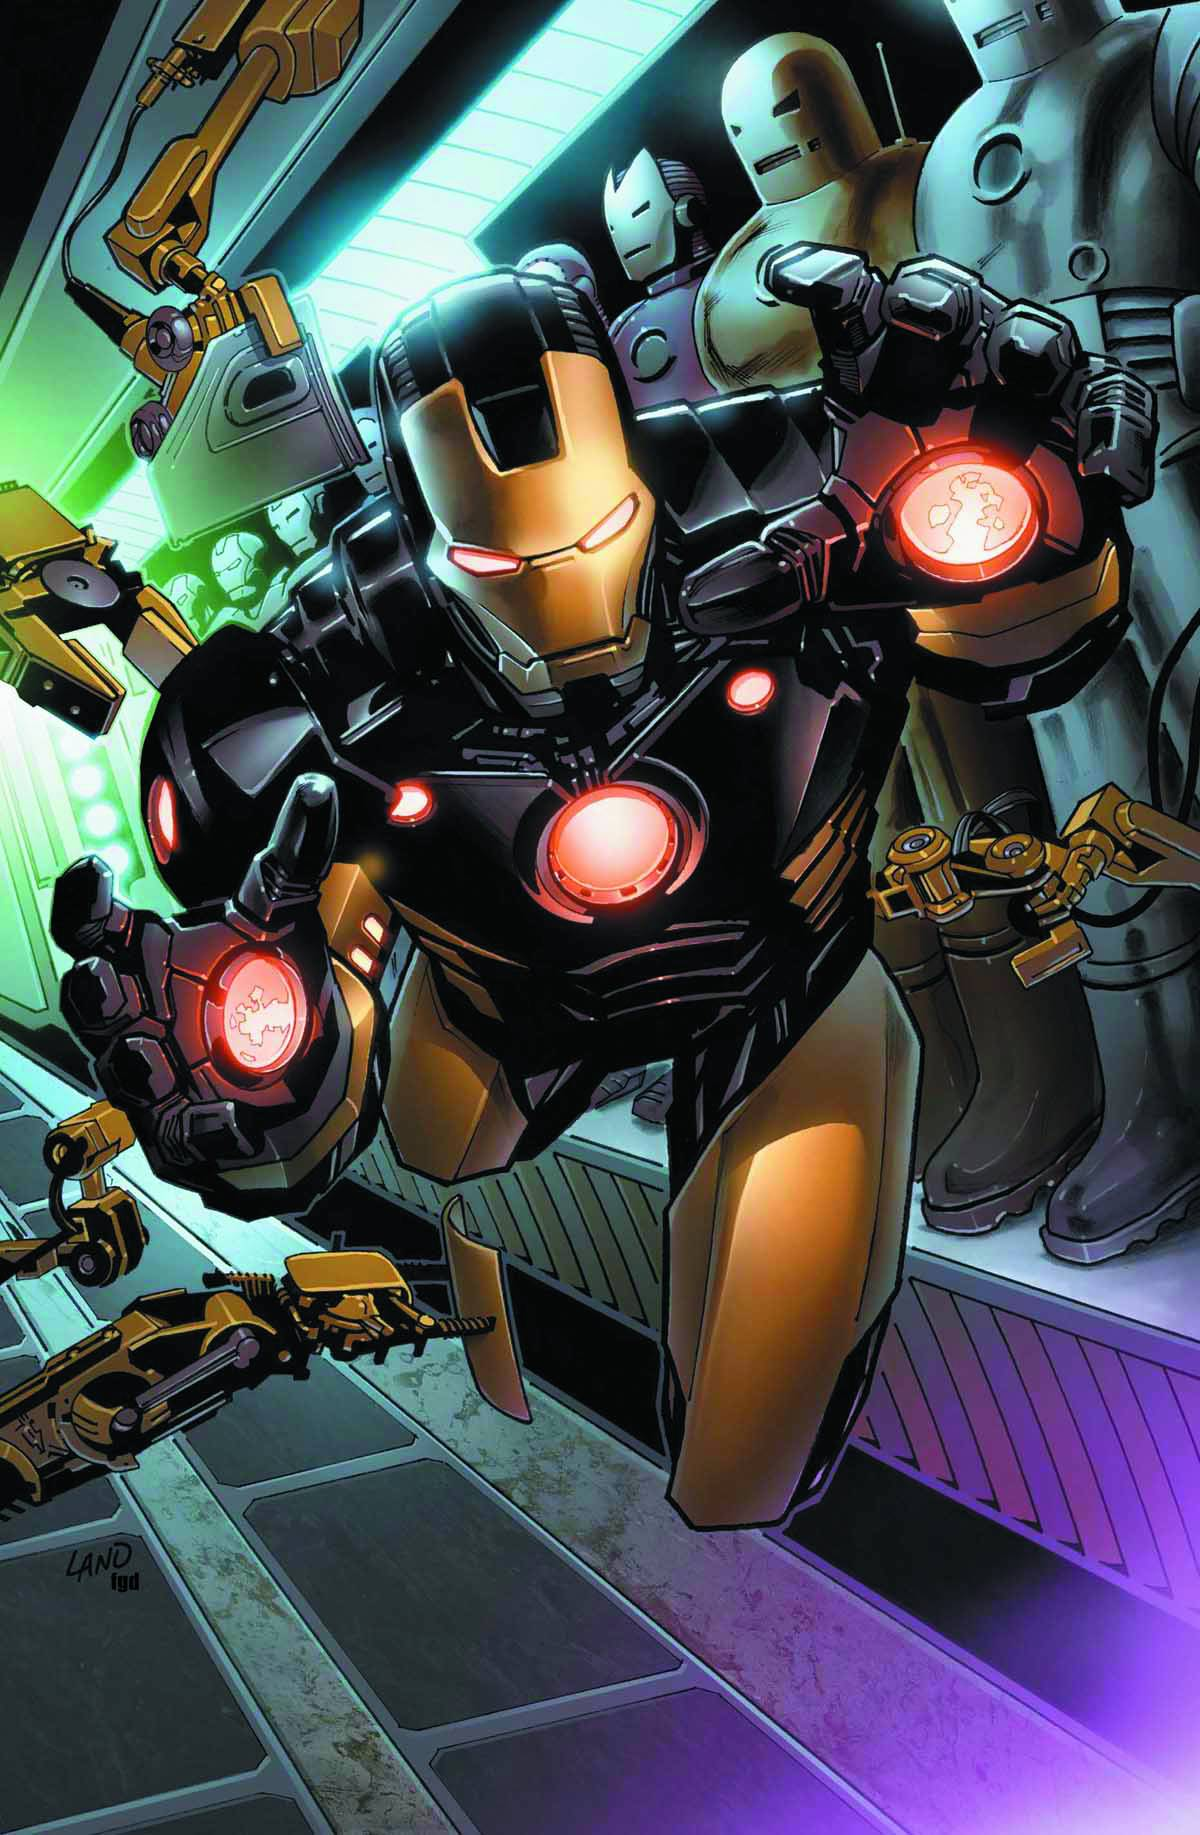 IRON MAN BY GREG LAND POSTER NOW